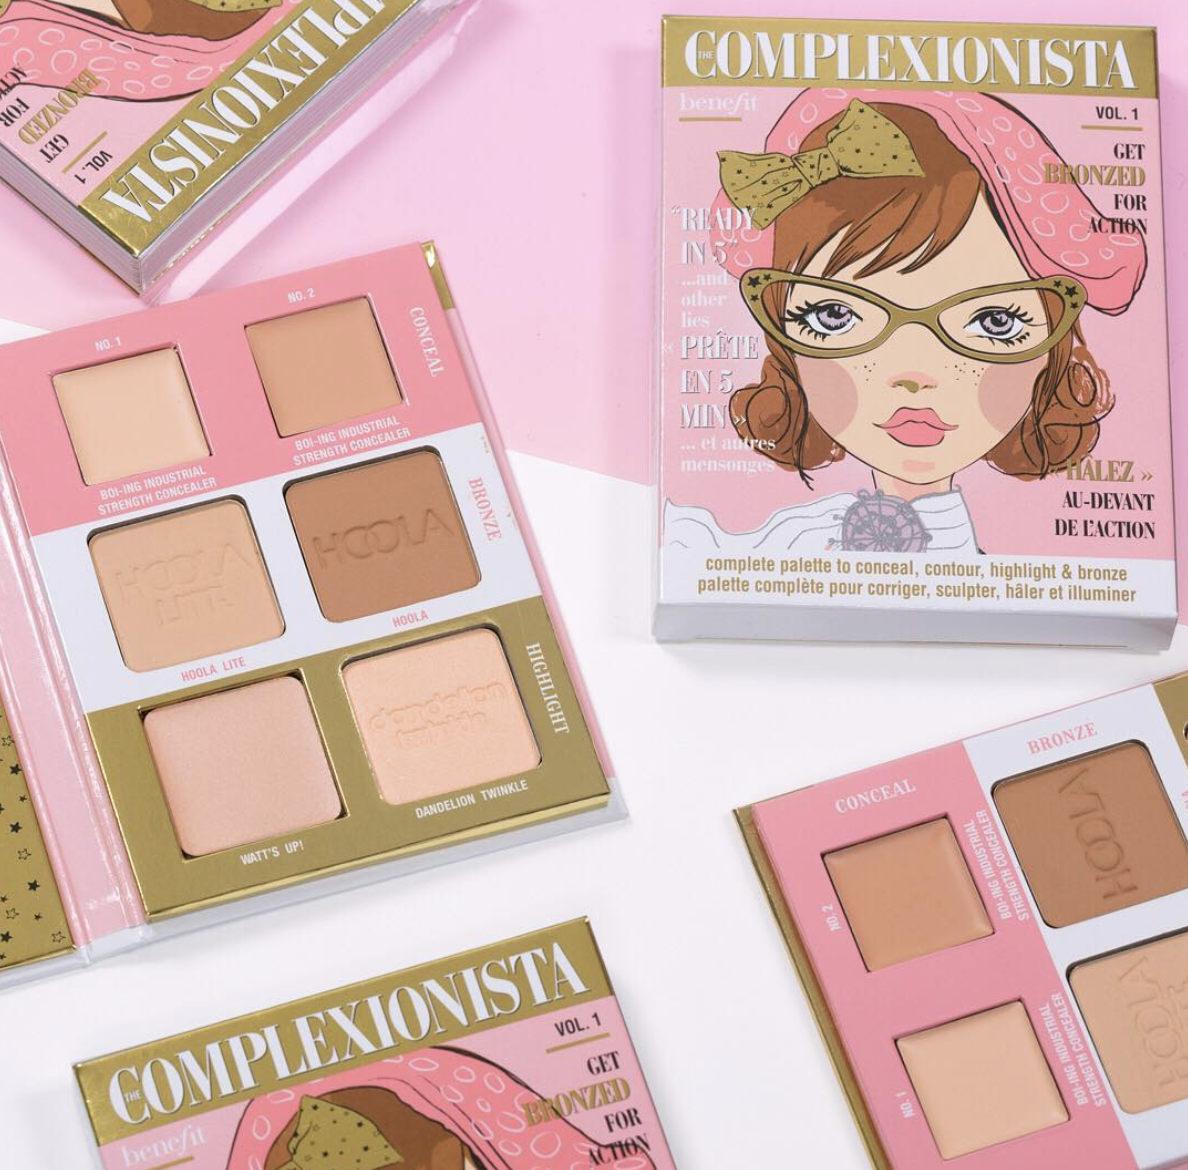 Benefit's new Complexionista palette is the only makeup product you'll need to carry in your bag